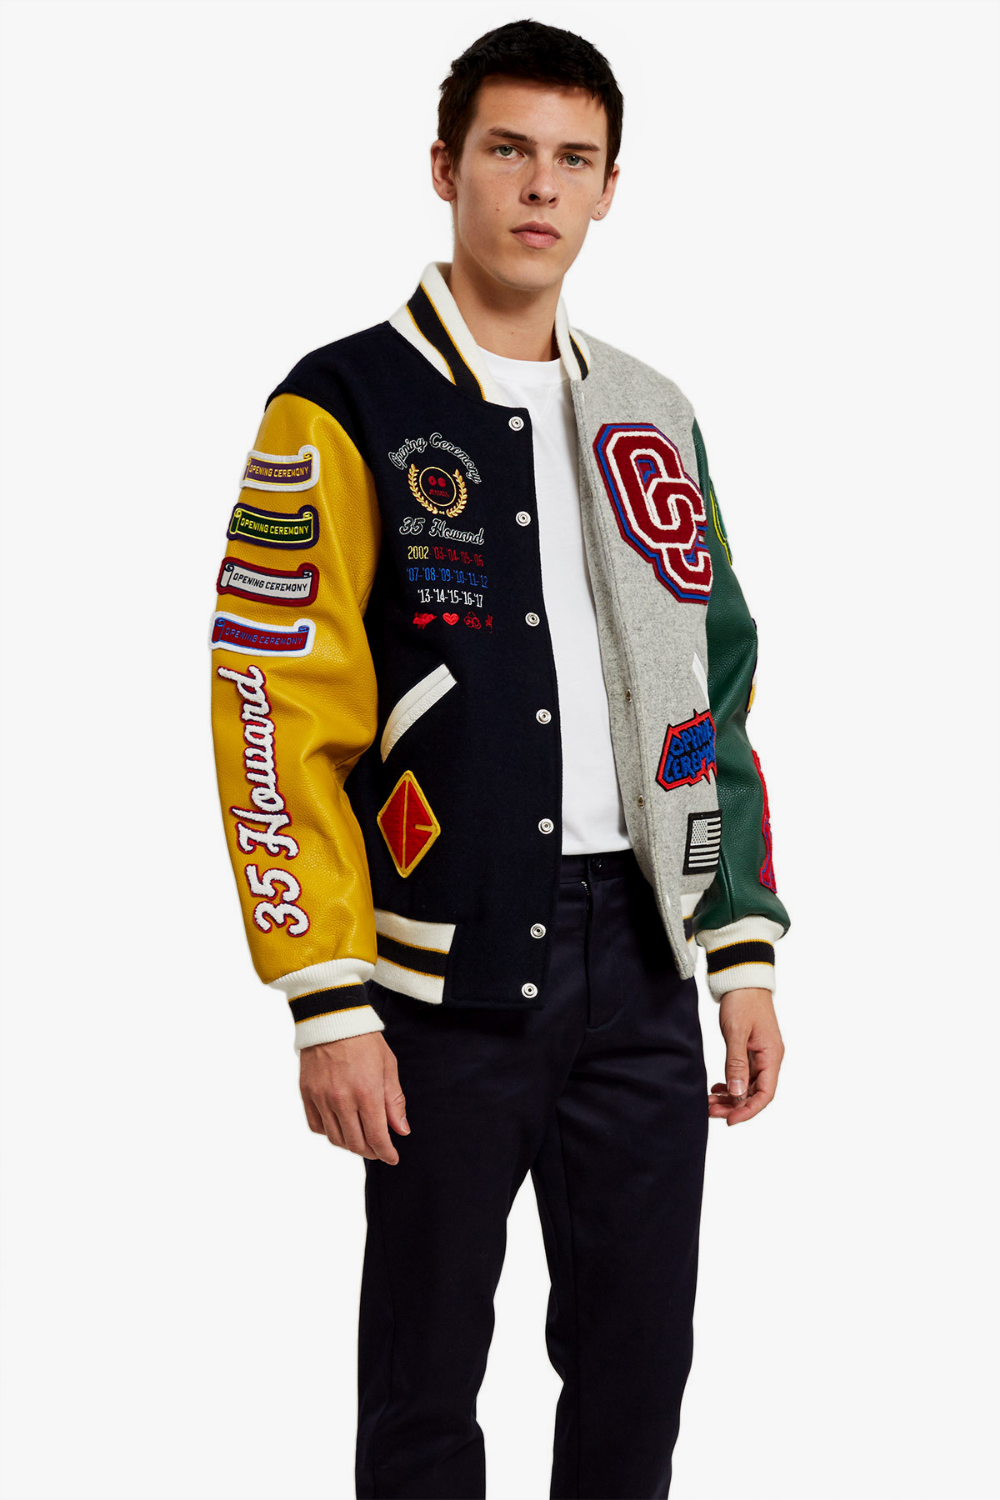 Opening Ceremony Celebrates 15-Years Strong With Limited-Edition Varsity Jacket